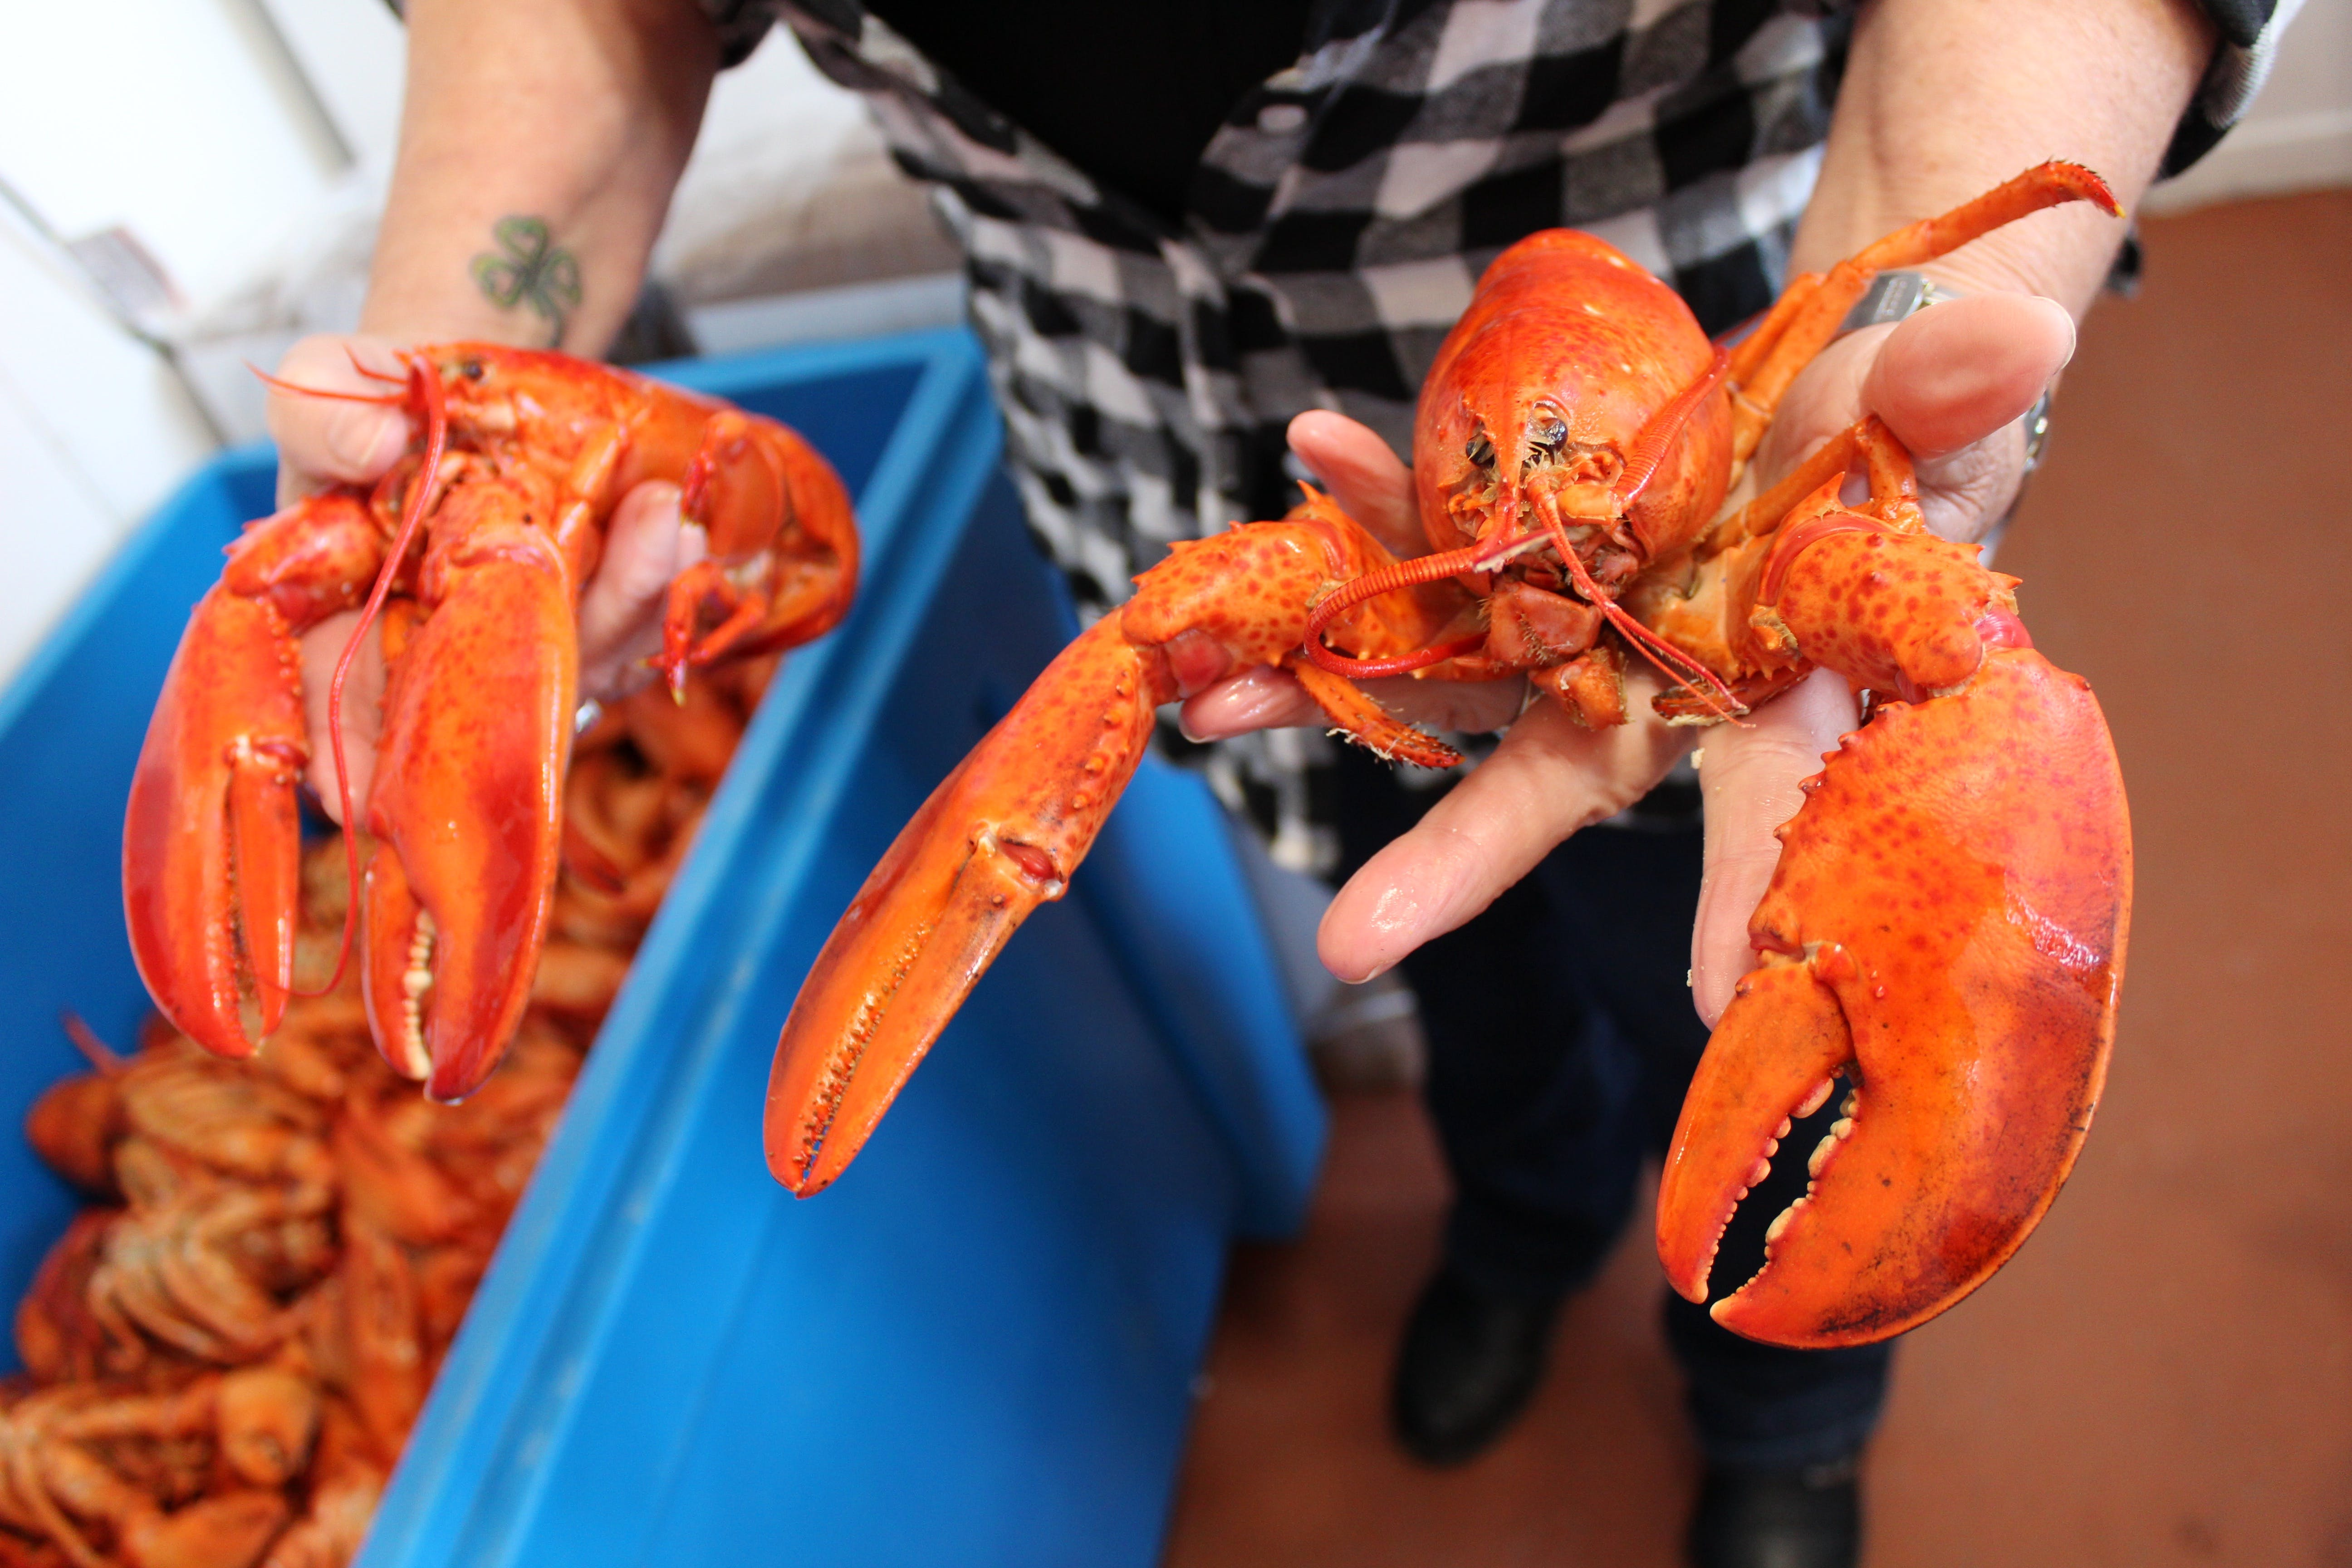 Researchers at the Verschuren Centre at Cape Breton University are extracting materials from lobster shells to create sustainable plastics. CAPE BRETON POST FILE